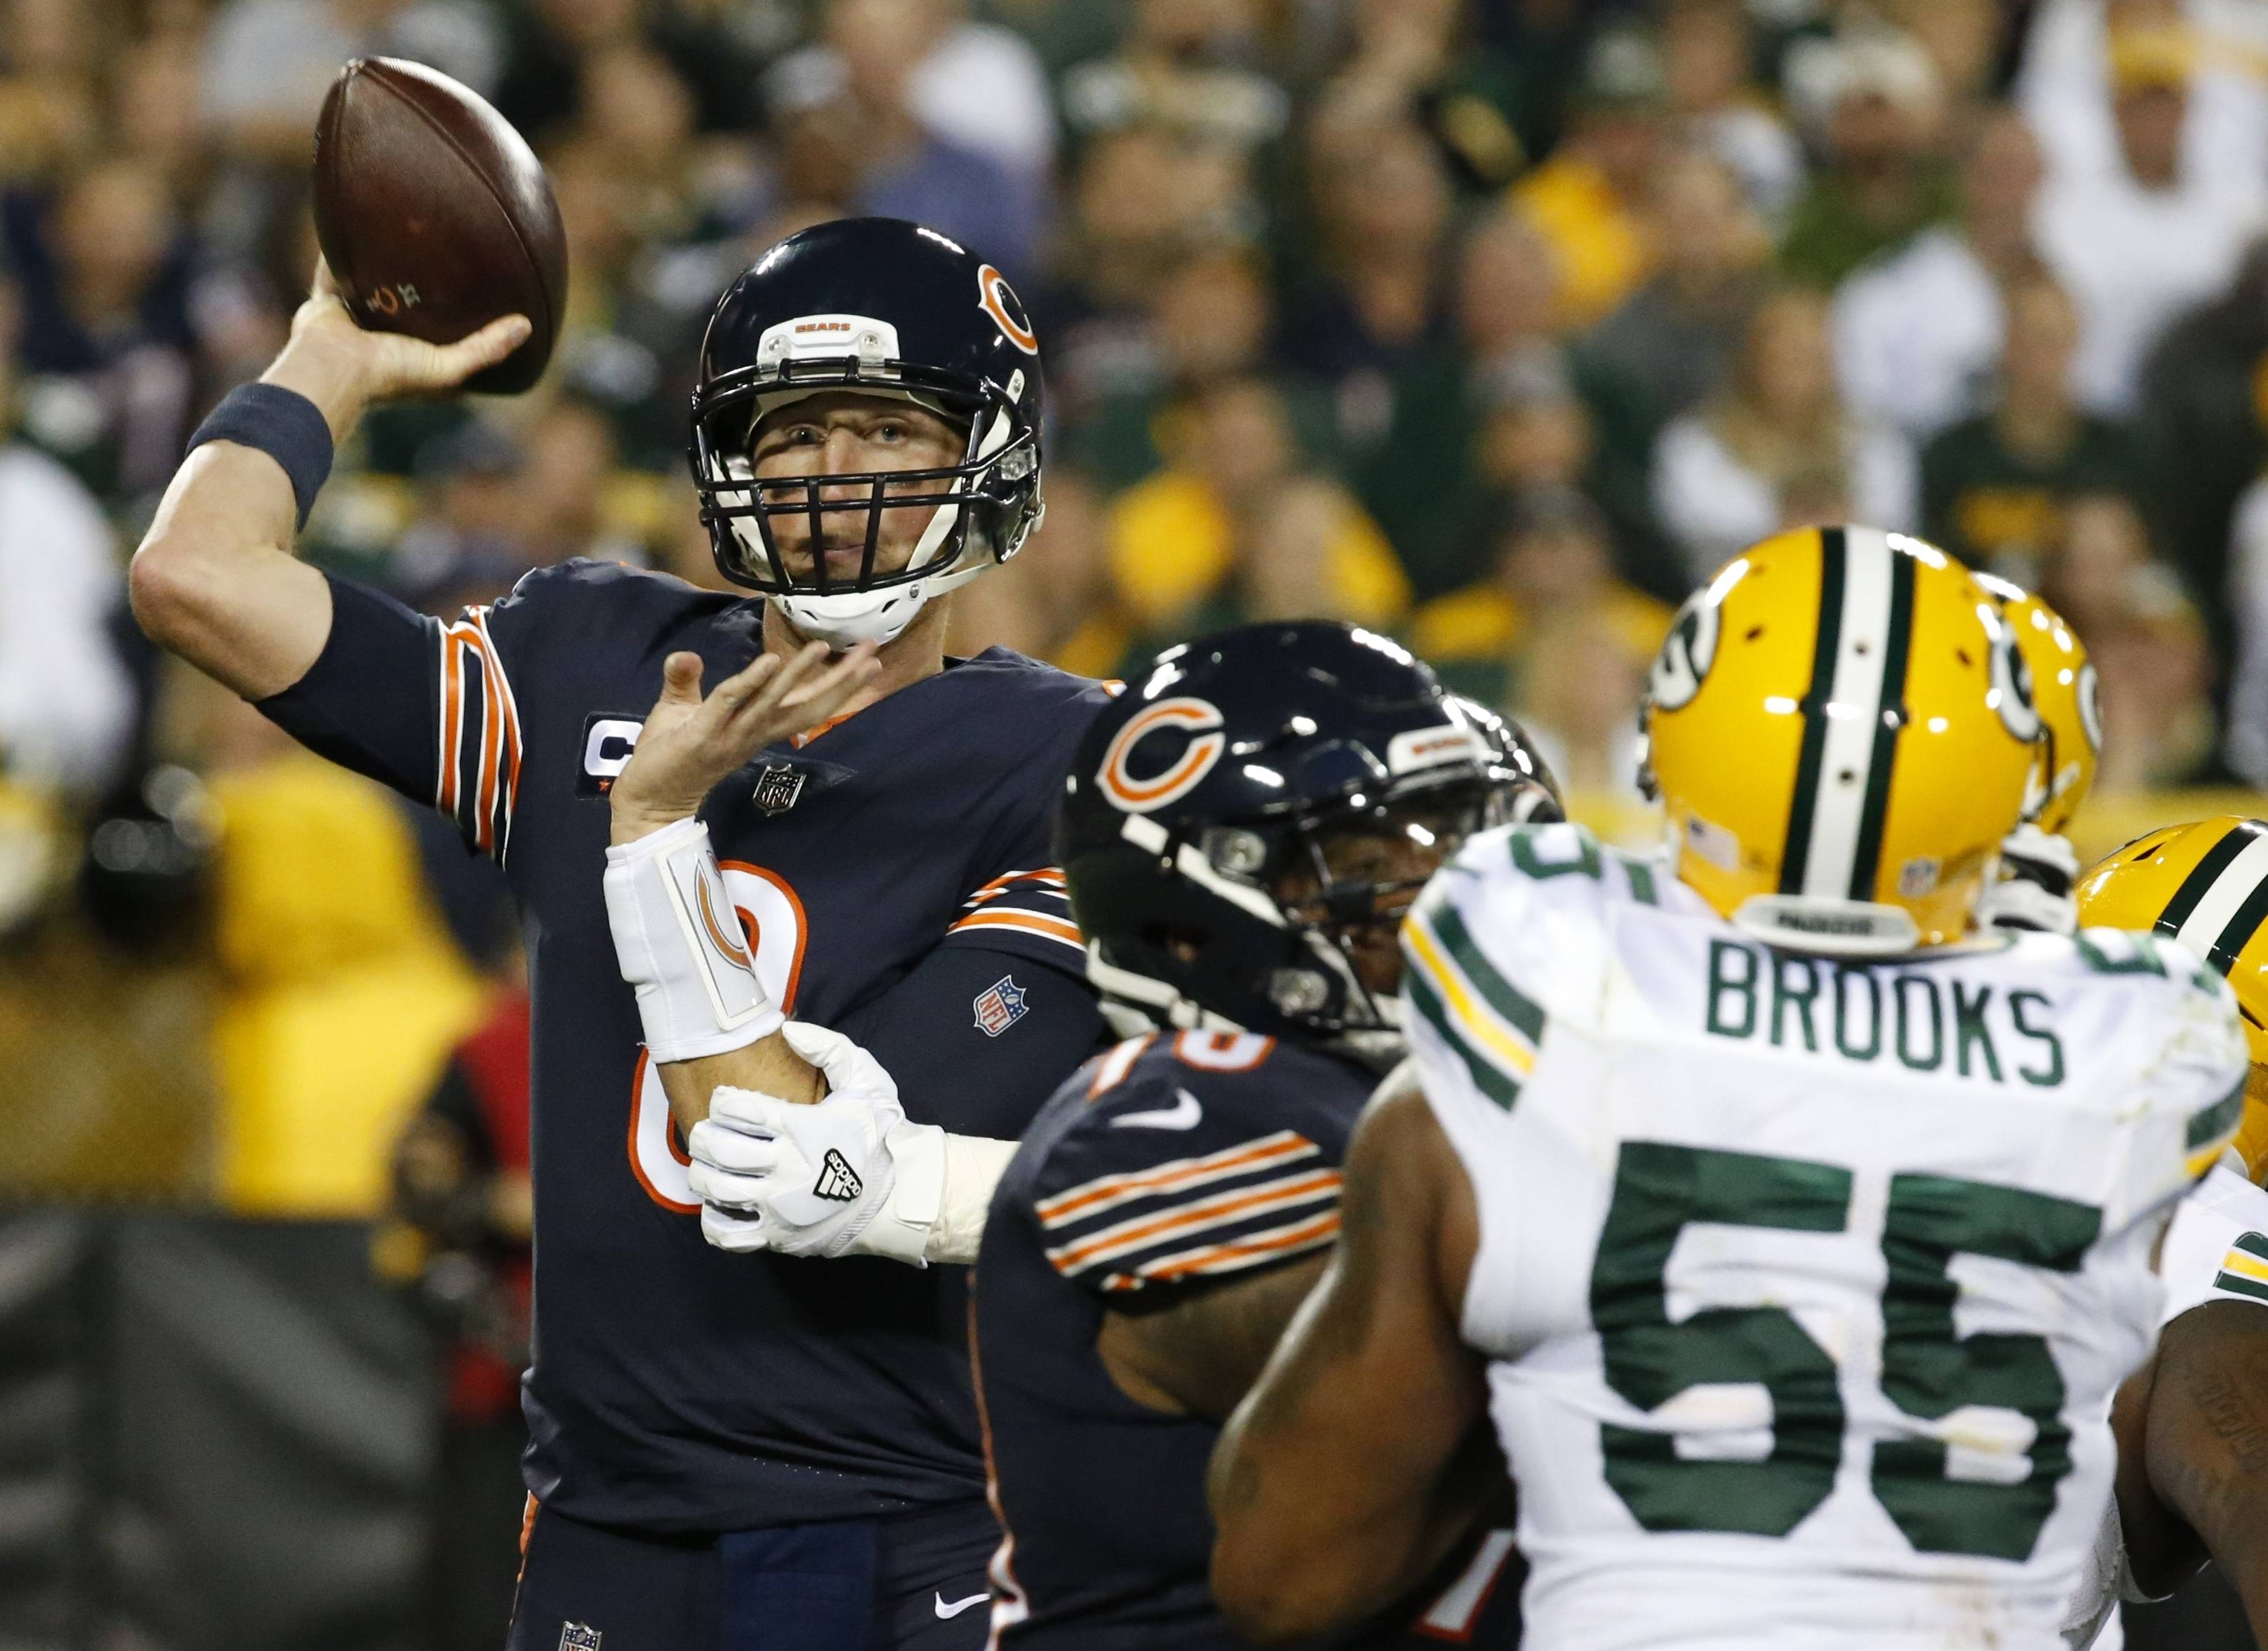 Bears QB Mike Glennon throws in the first half Thursday in Green Bay.